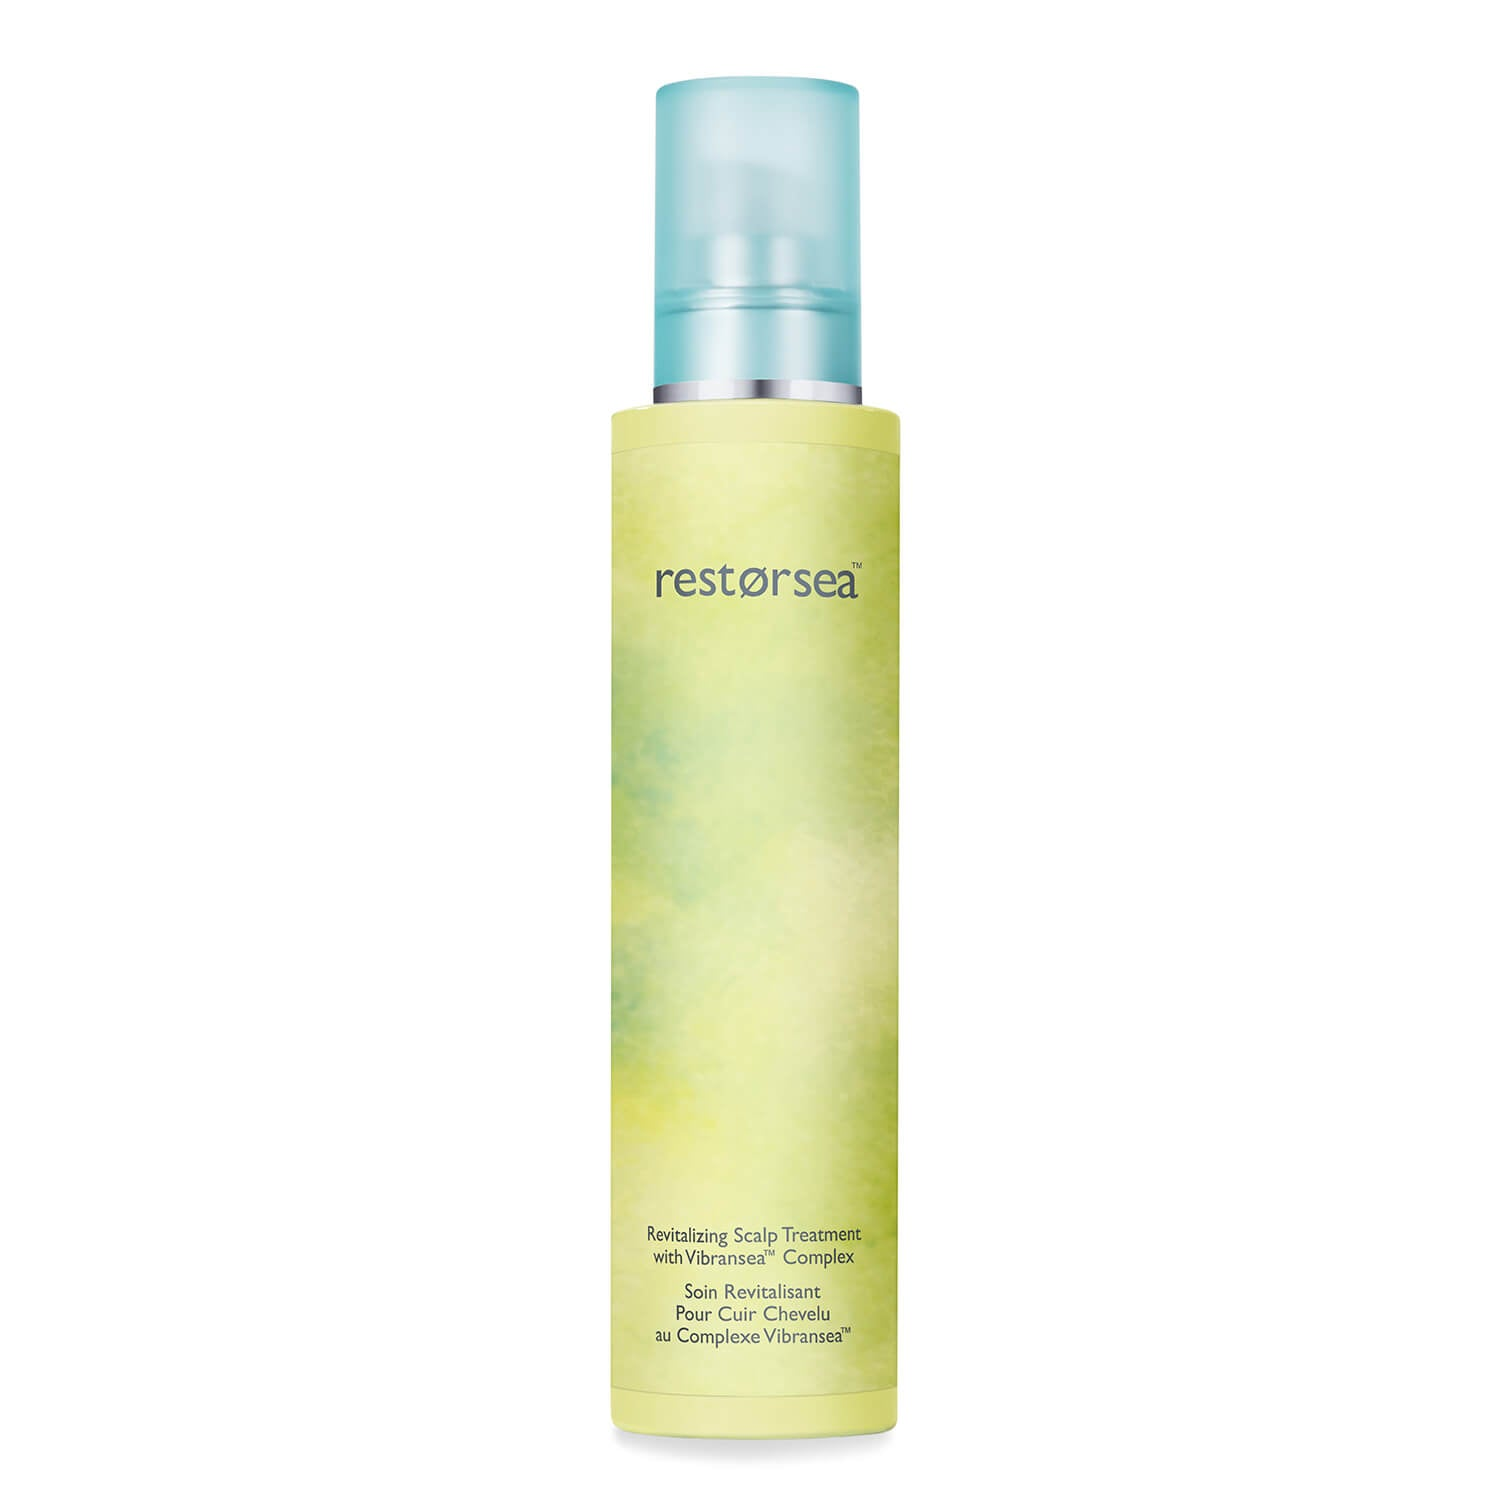 PRO Revitalizing Scalp Treatment